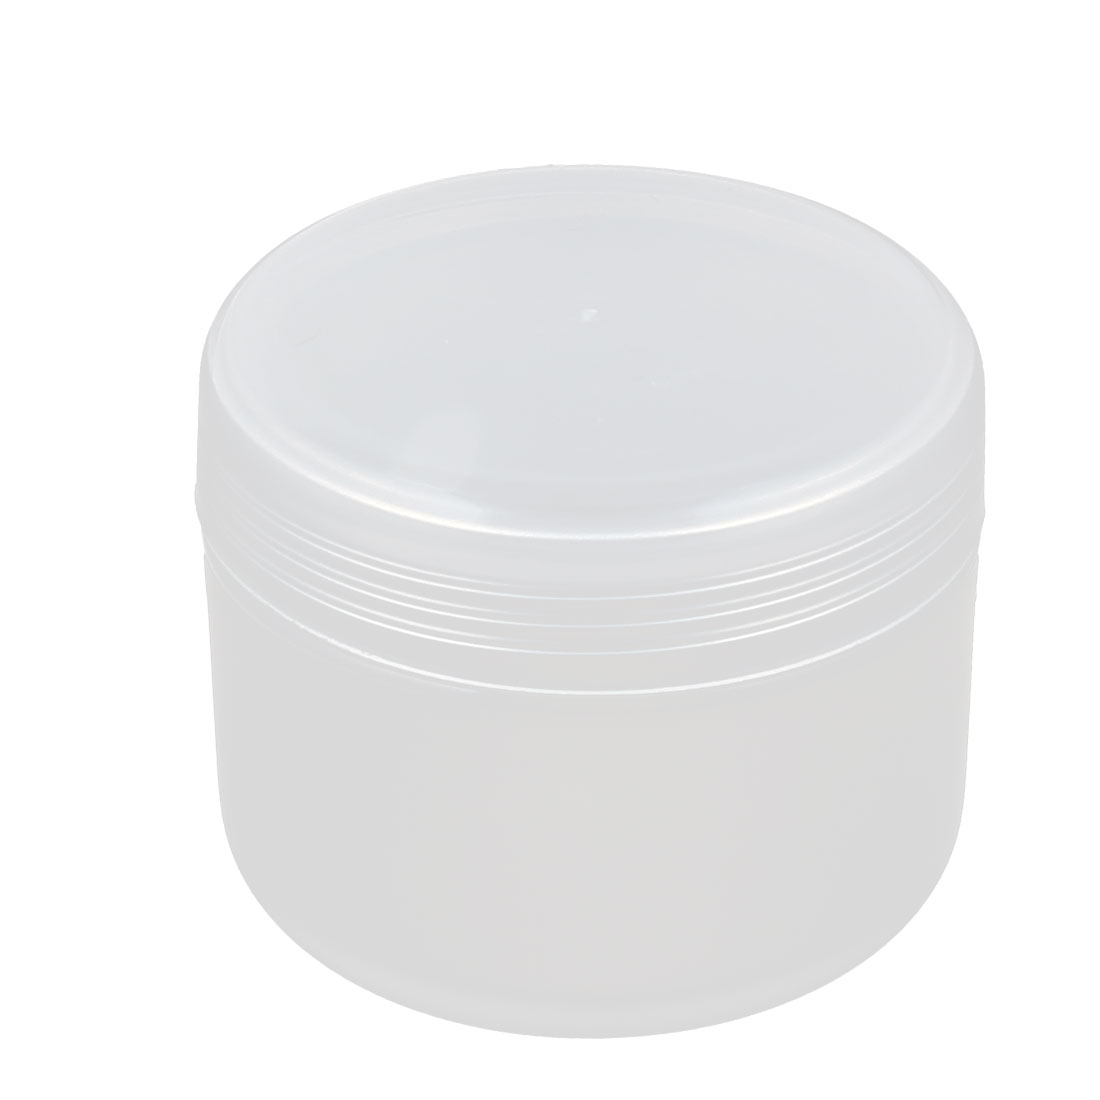 Clear Plastic Cosmetic Empty Jar Pot Face Cream Eyeshadow Moisturizer Bottle Container 50g for Women